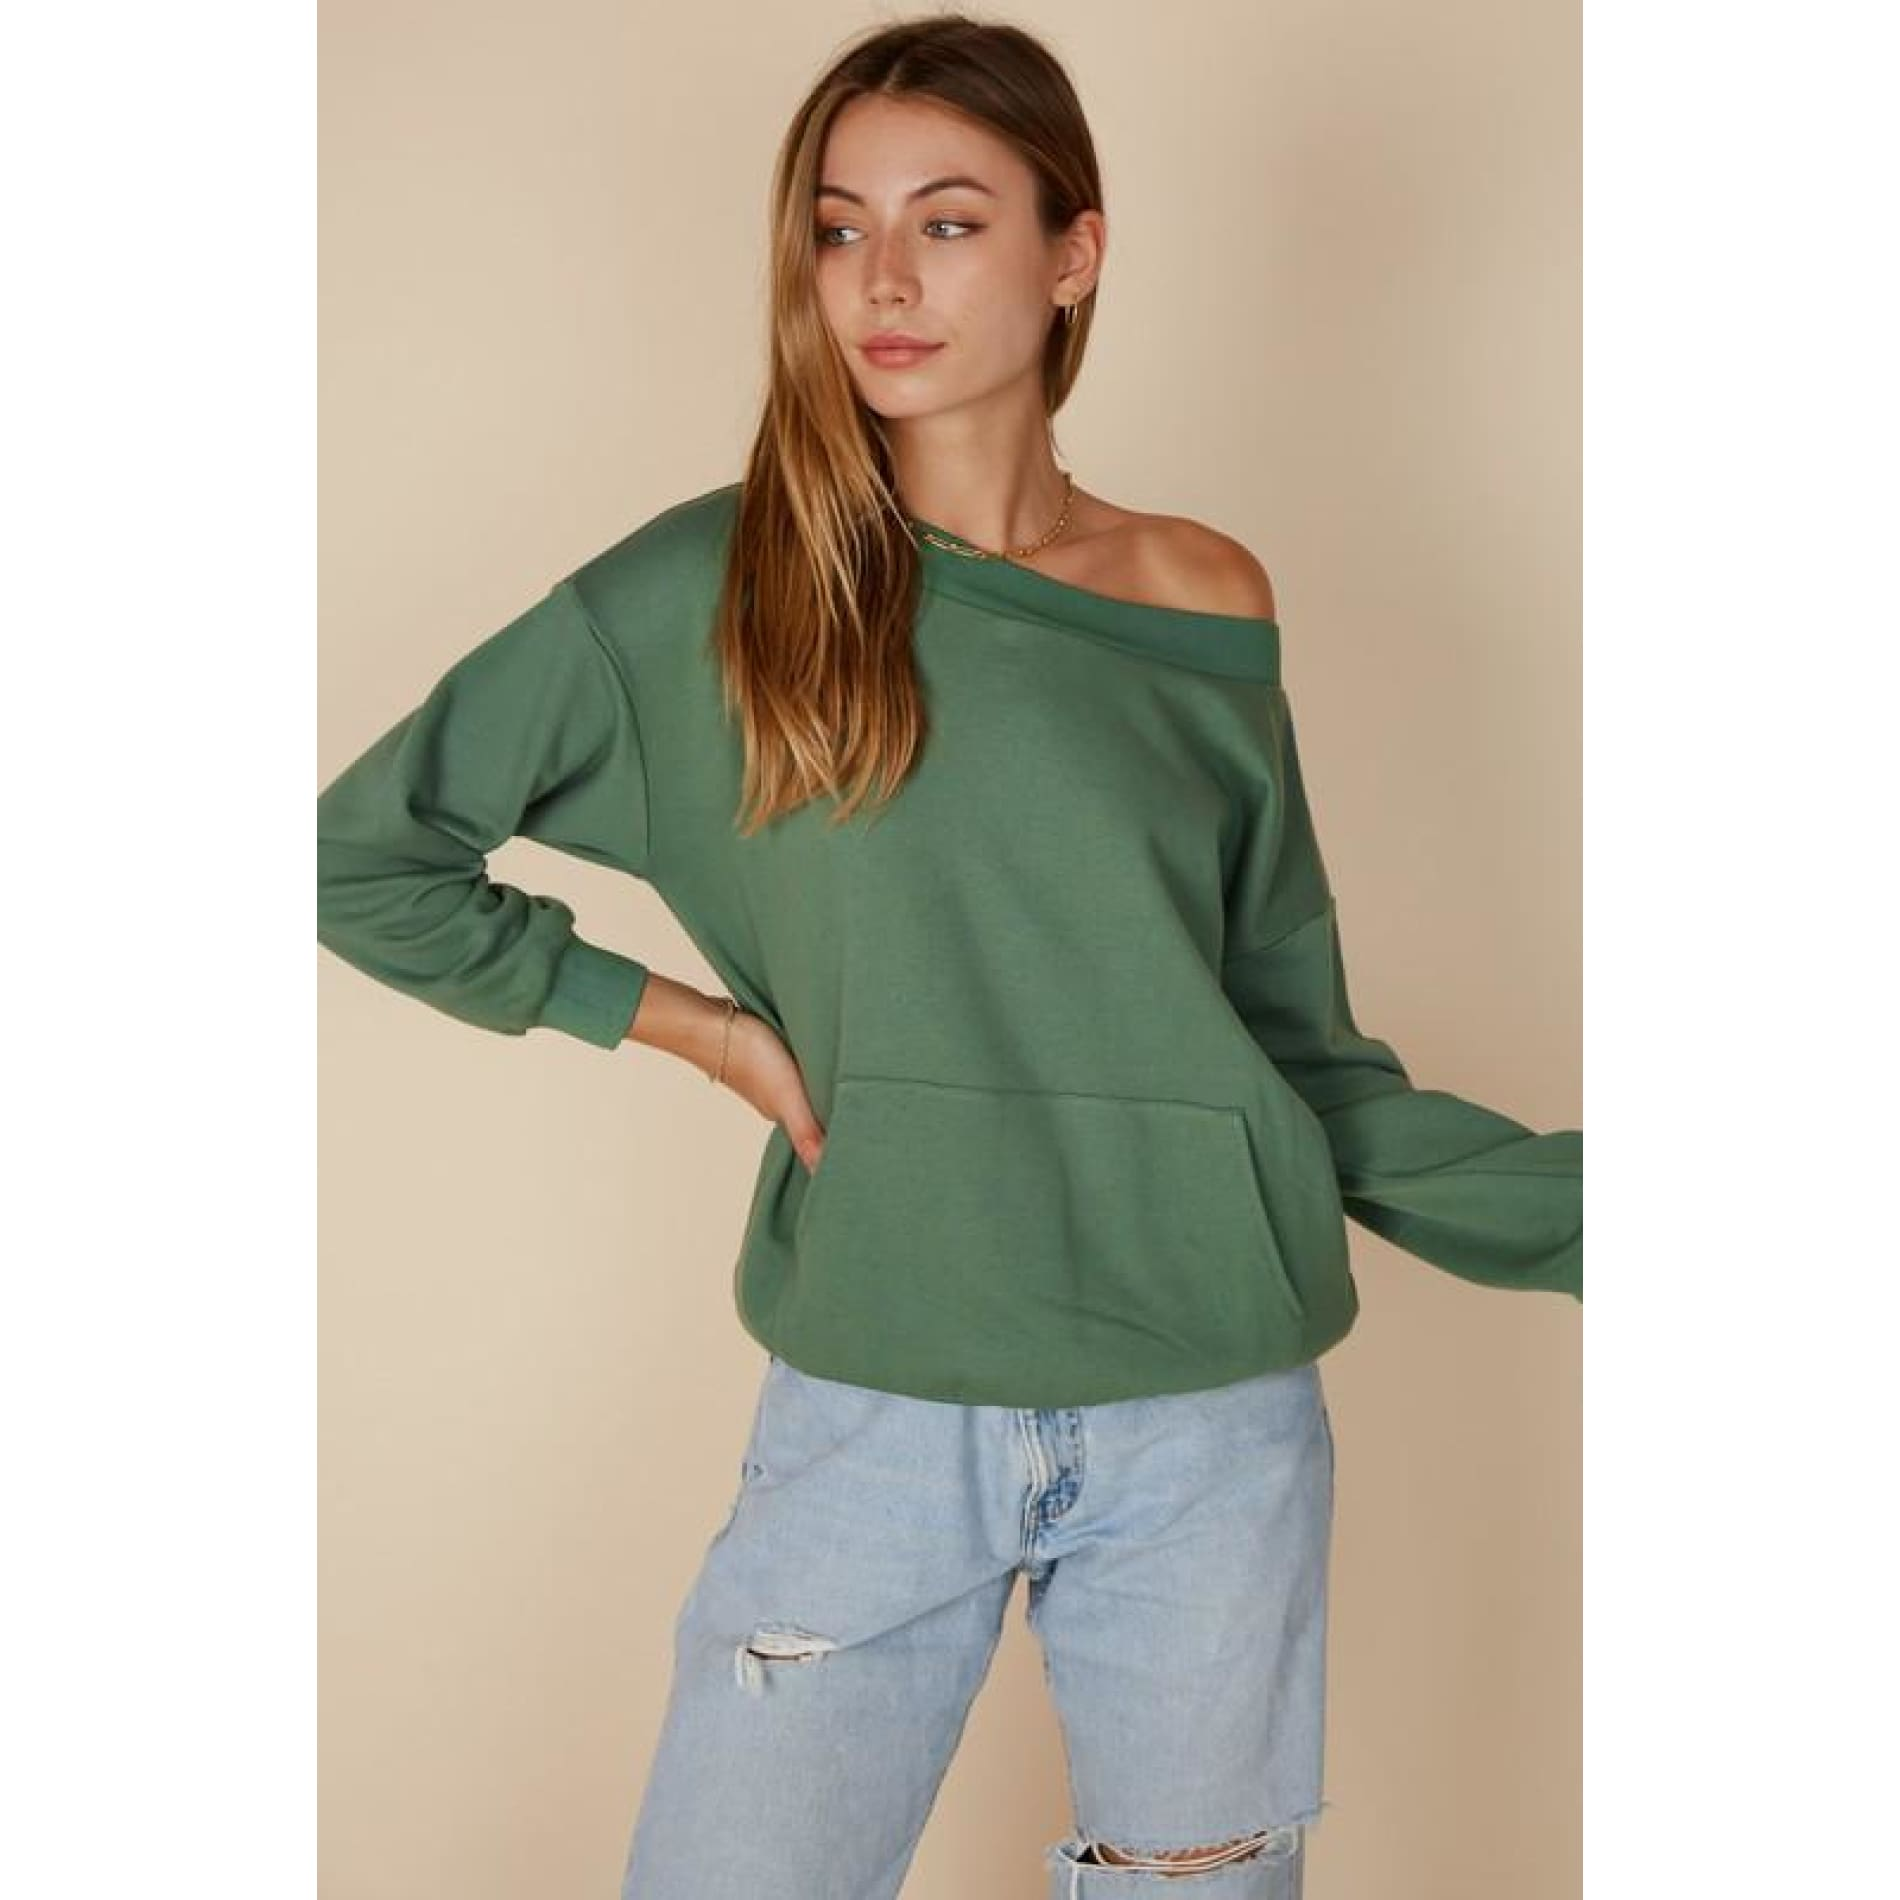 Poison Ivy Sweatshirt - Sweater